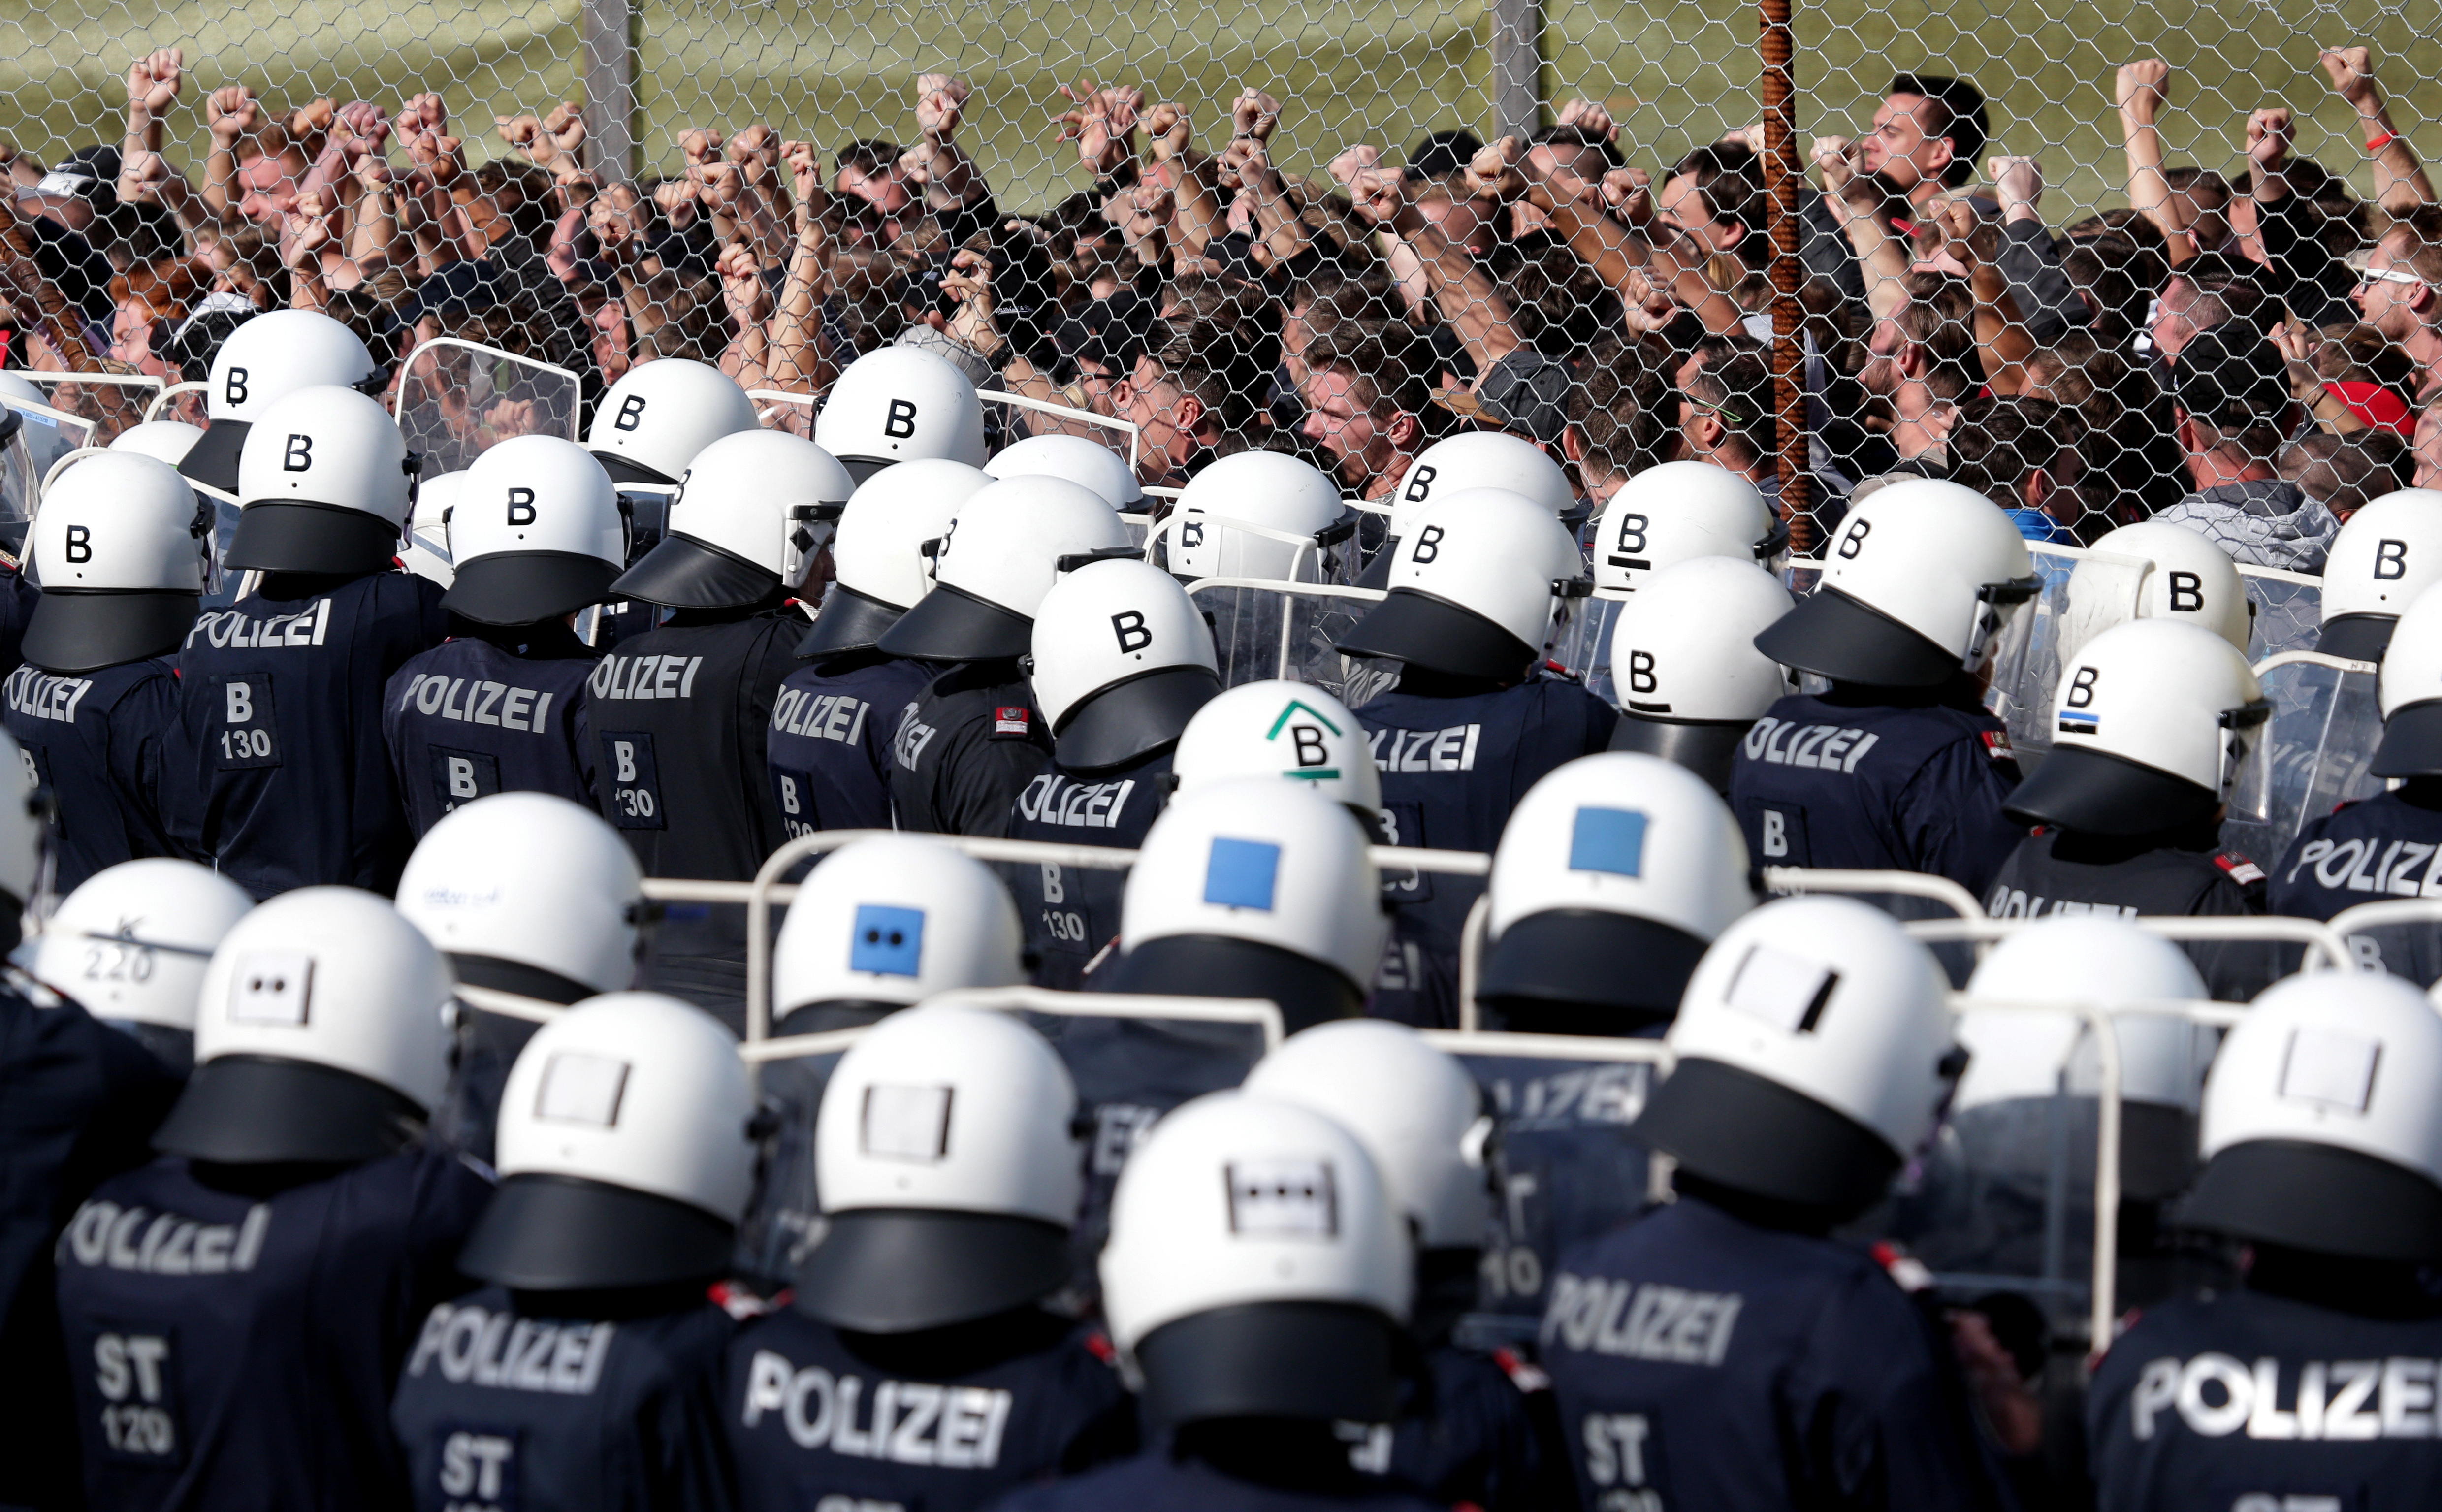 Police officers attend an exercise to prevent migrants from crossing the Austrian border from Slovenia, in Spielfeld, Austria, June 26, 2018. (Lisi Niesner/Reuters)